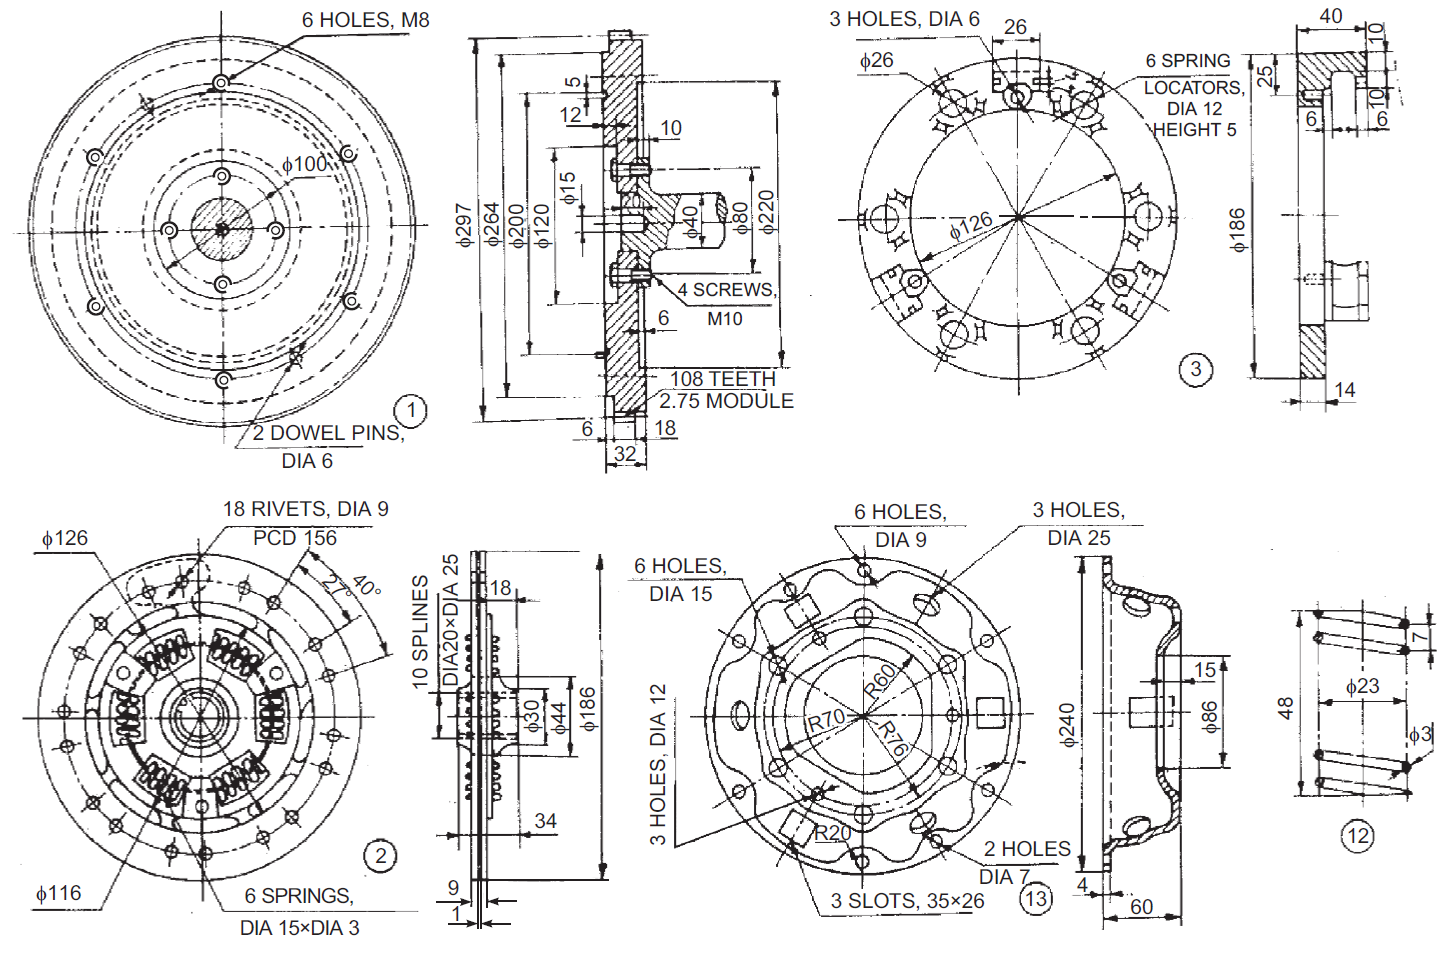 Mechanical Machine Design: Single Plate Clutch 2D Drawings